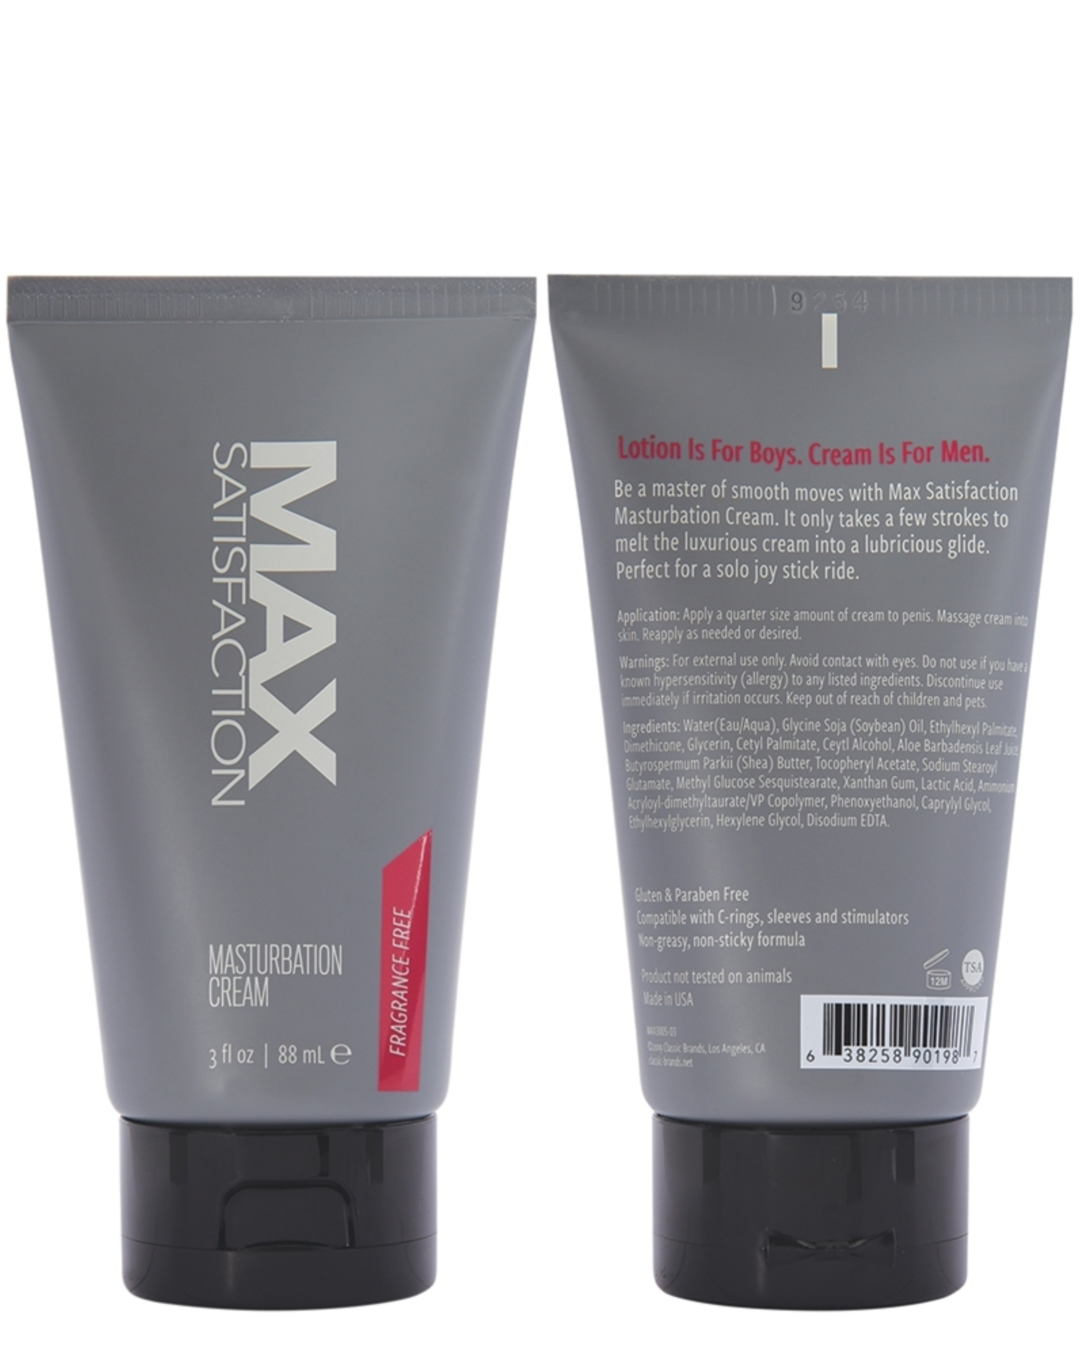 Max Satisfaction Masturbation Cream 3 oz front and back of tube